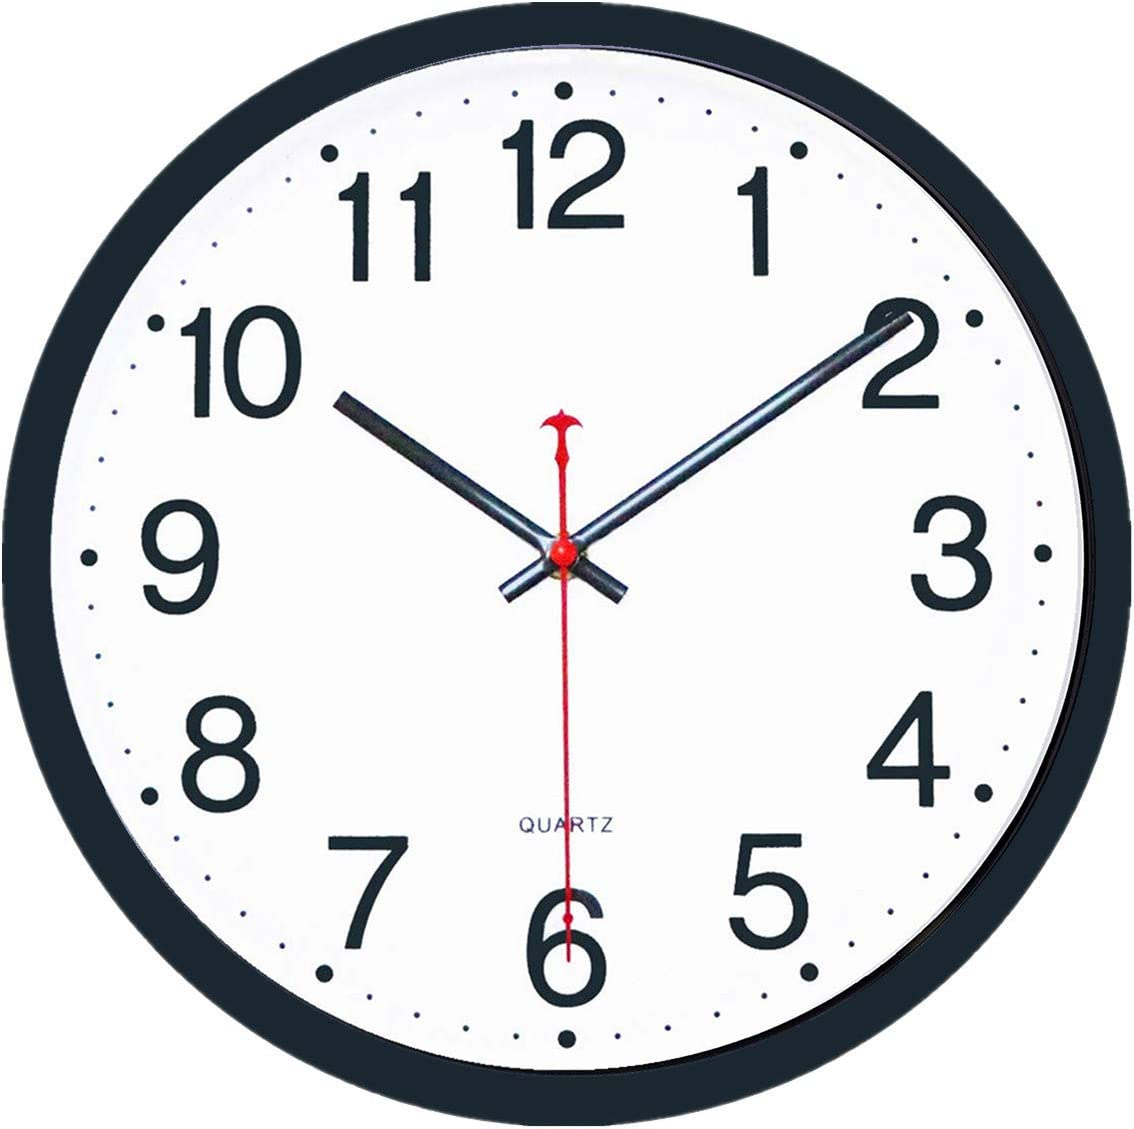 Foxtop 12 inch Silent Non-Ticking Quartz Battery Operated Round Easy to Read Black Wall Clock for Home Office Classroom School Decor